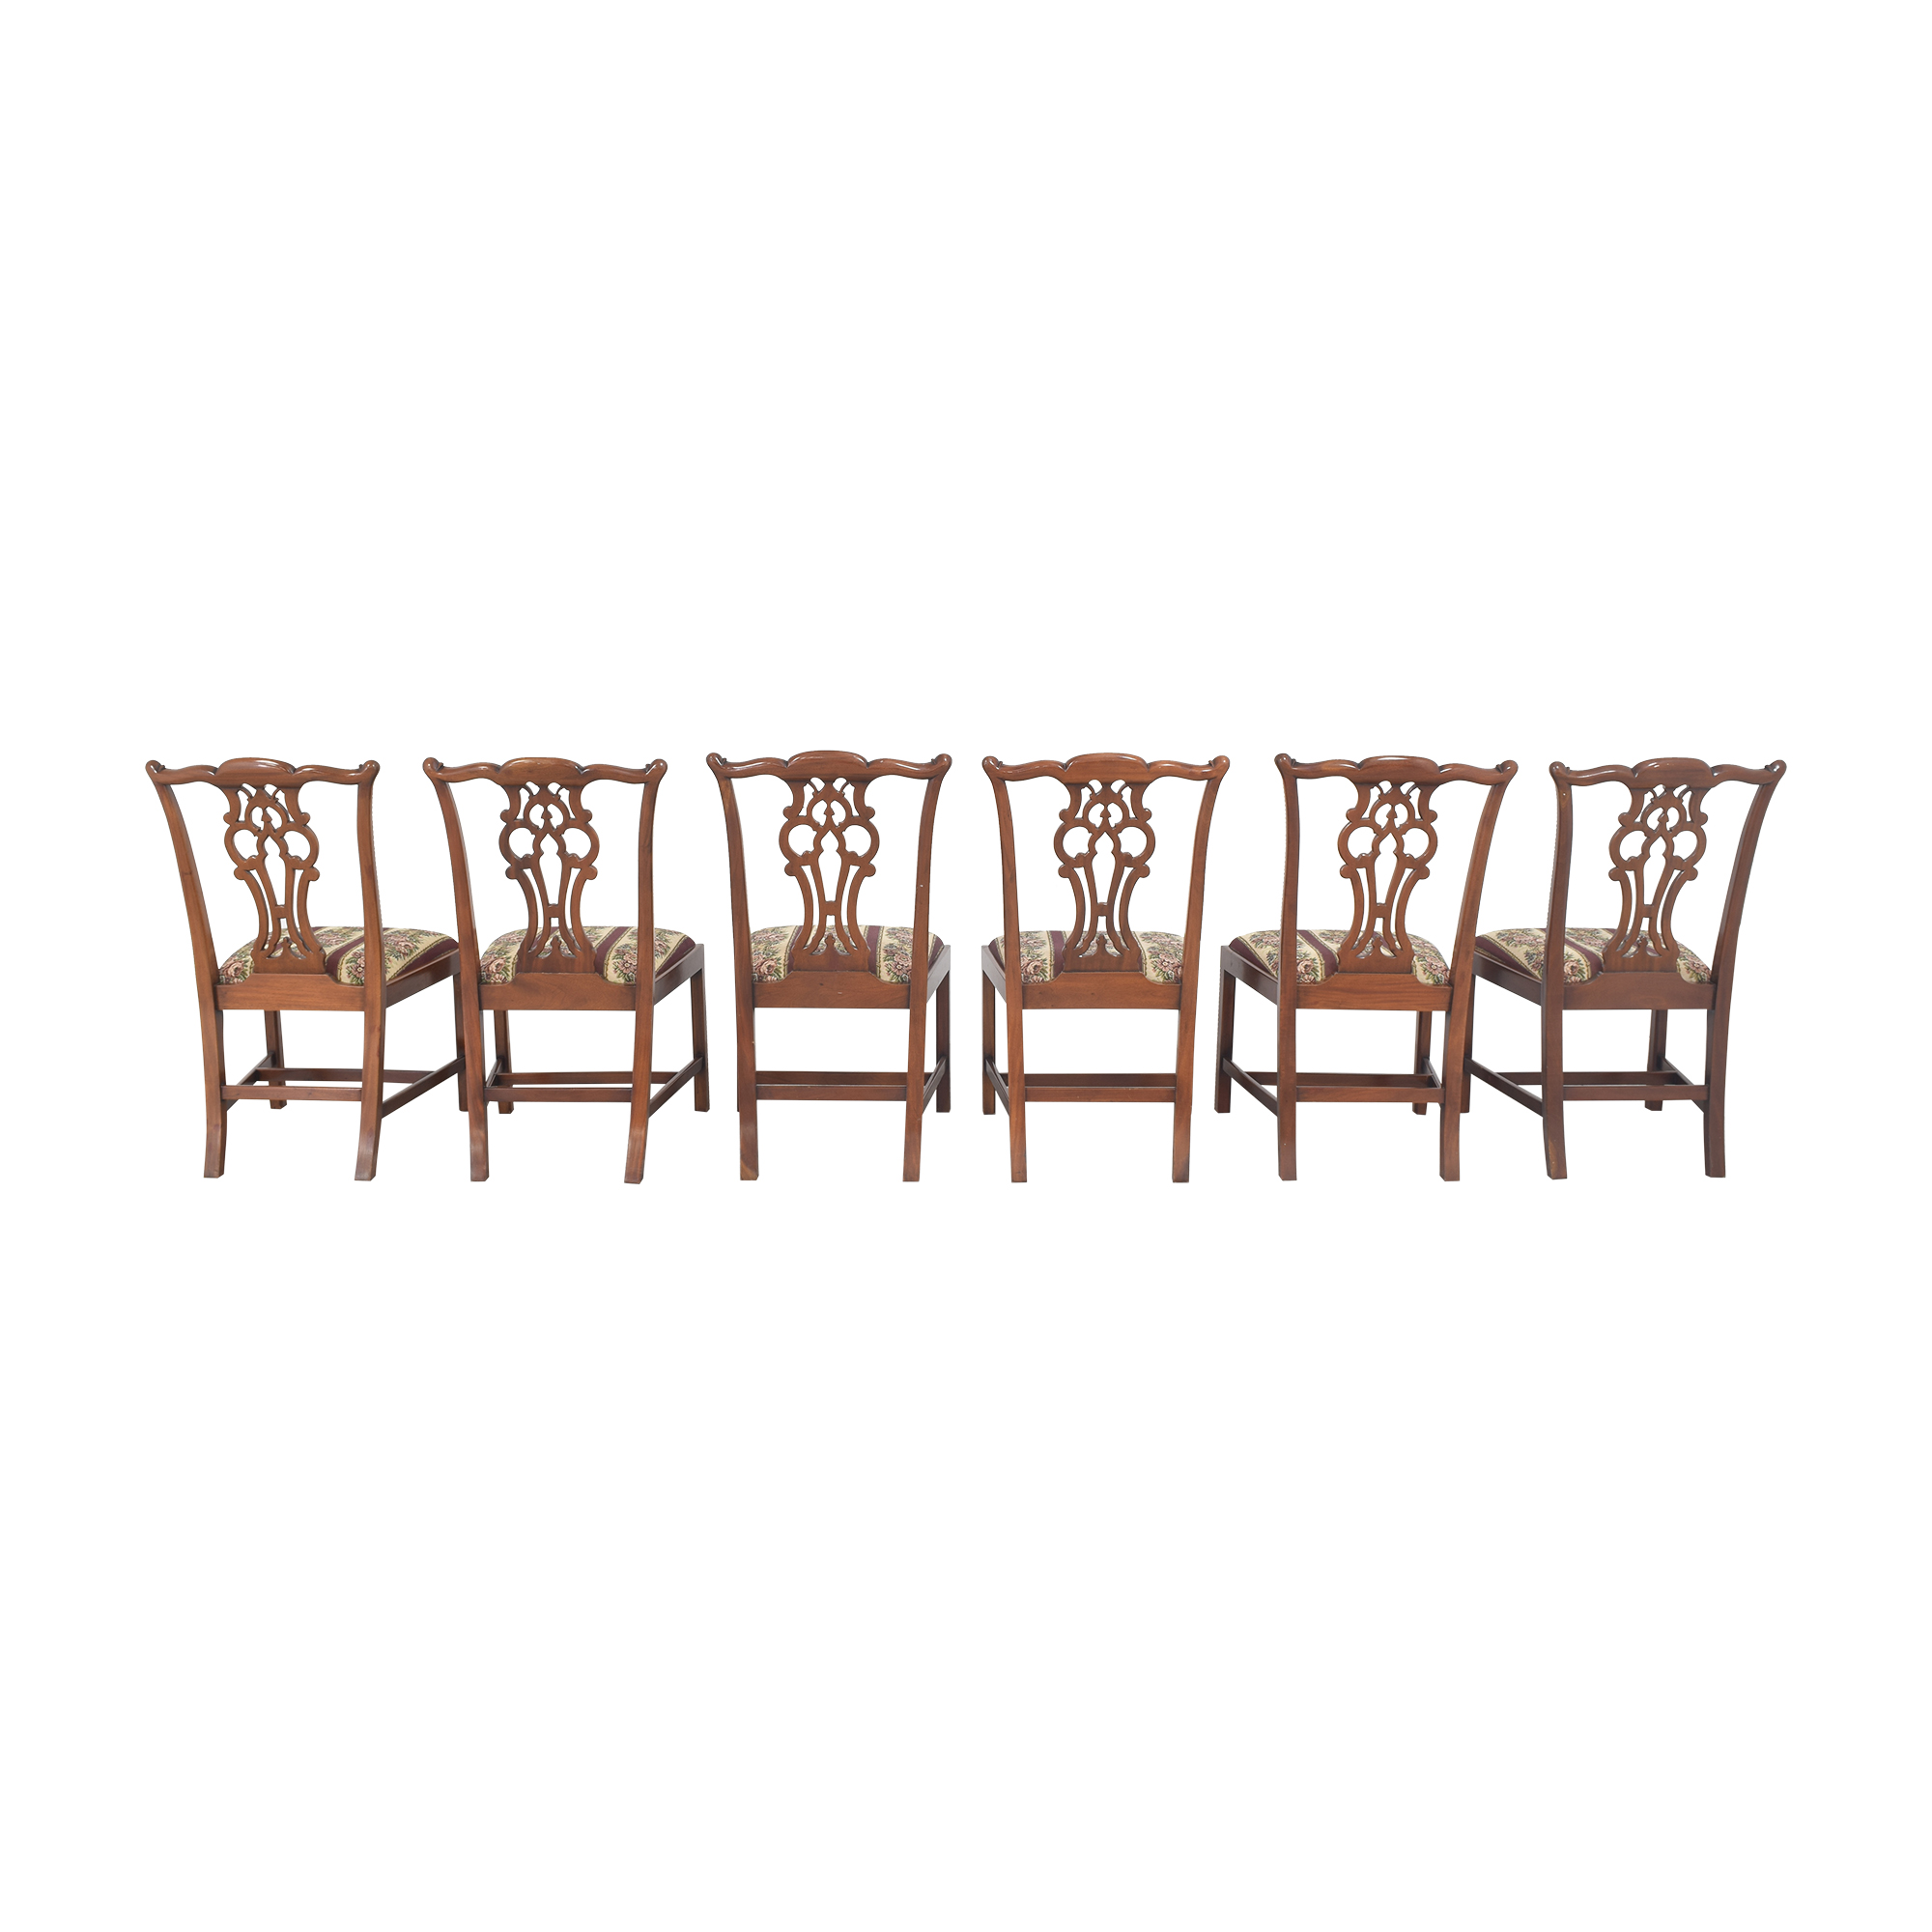 Maitland-Smith Chippendale Upholstered Dining Chairs / Chairs